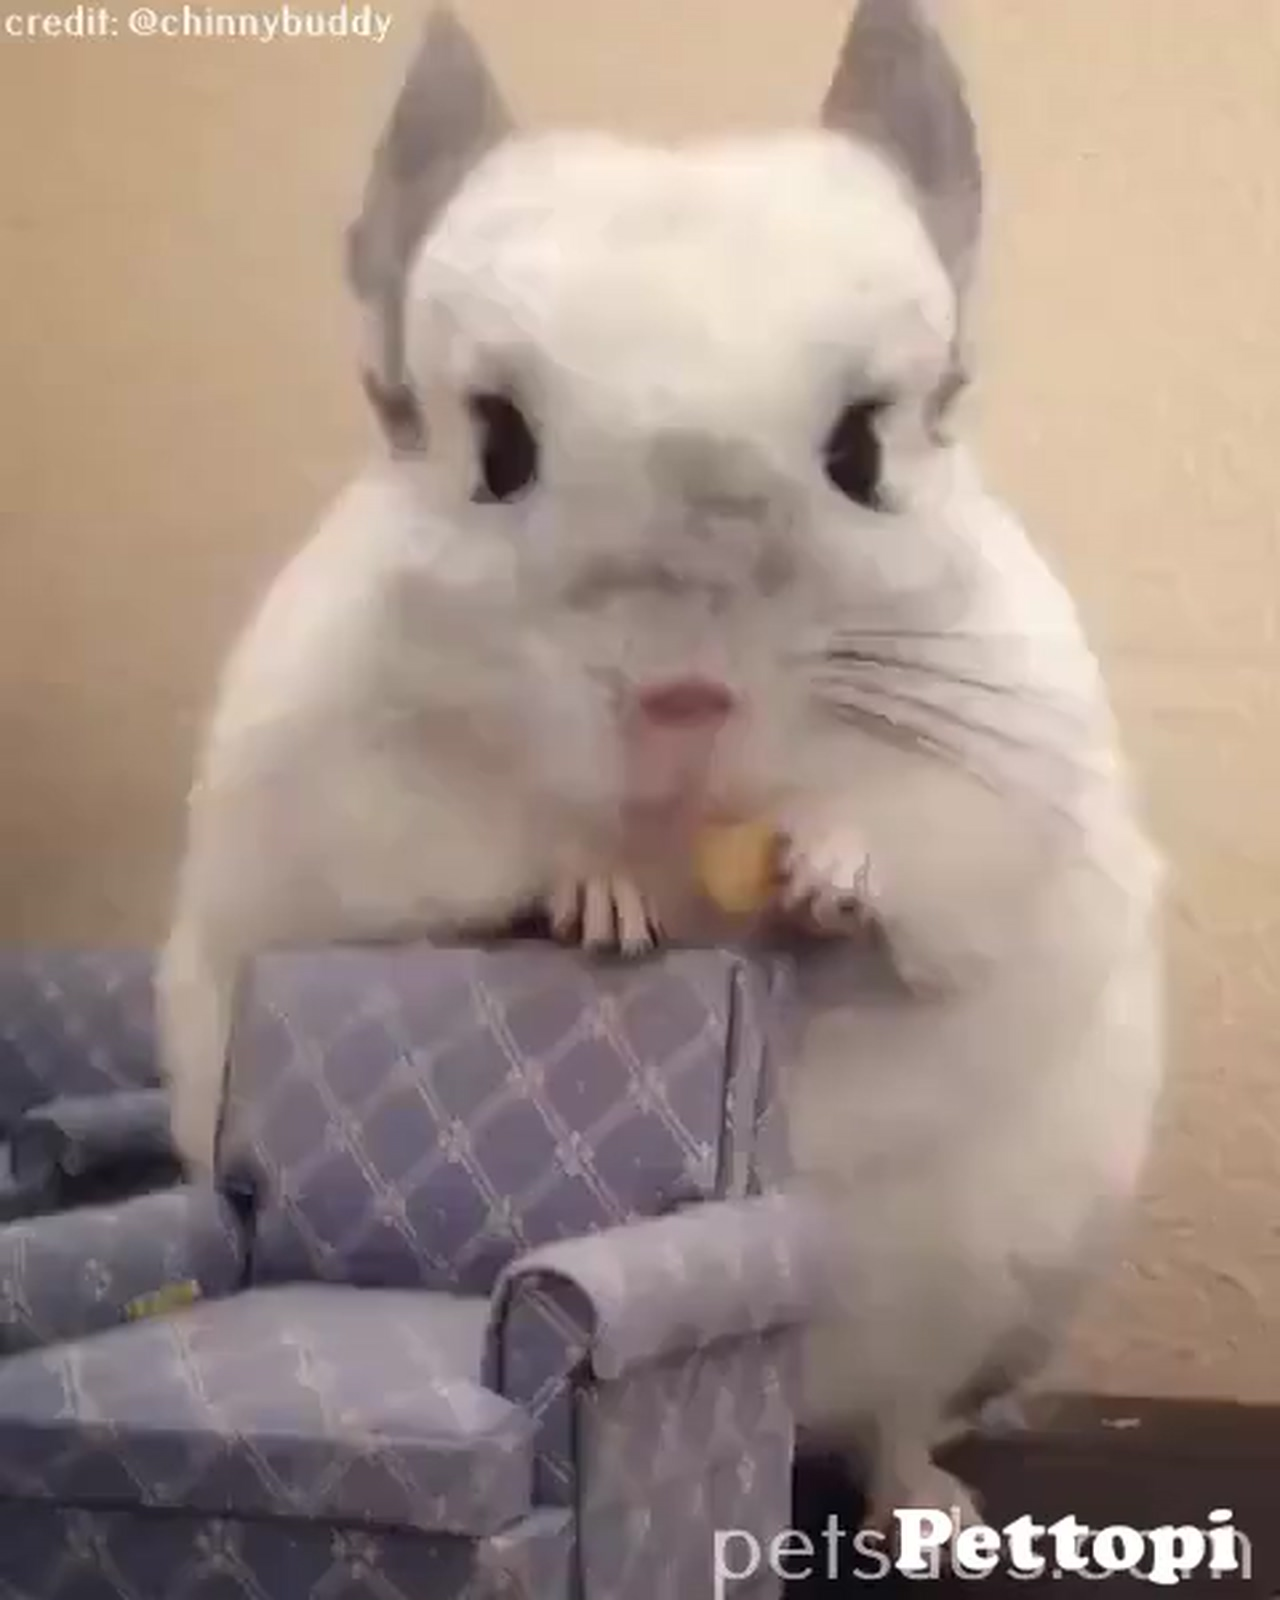 A cute chinchilla eating snacksWhen you're so busy eating and forgot to sit